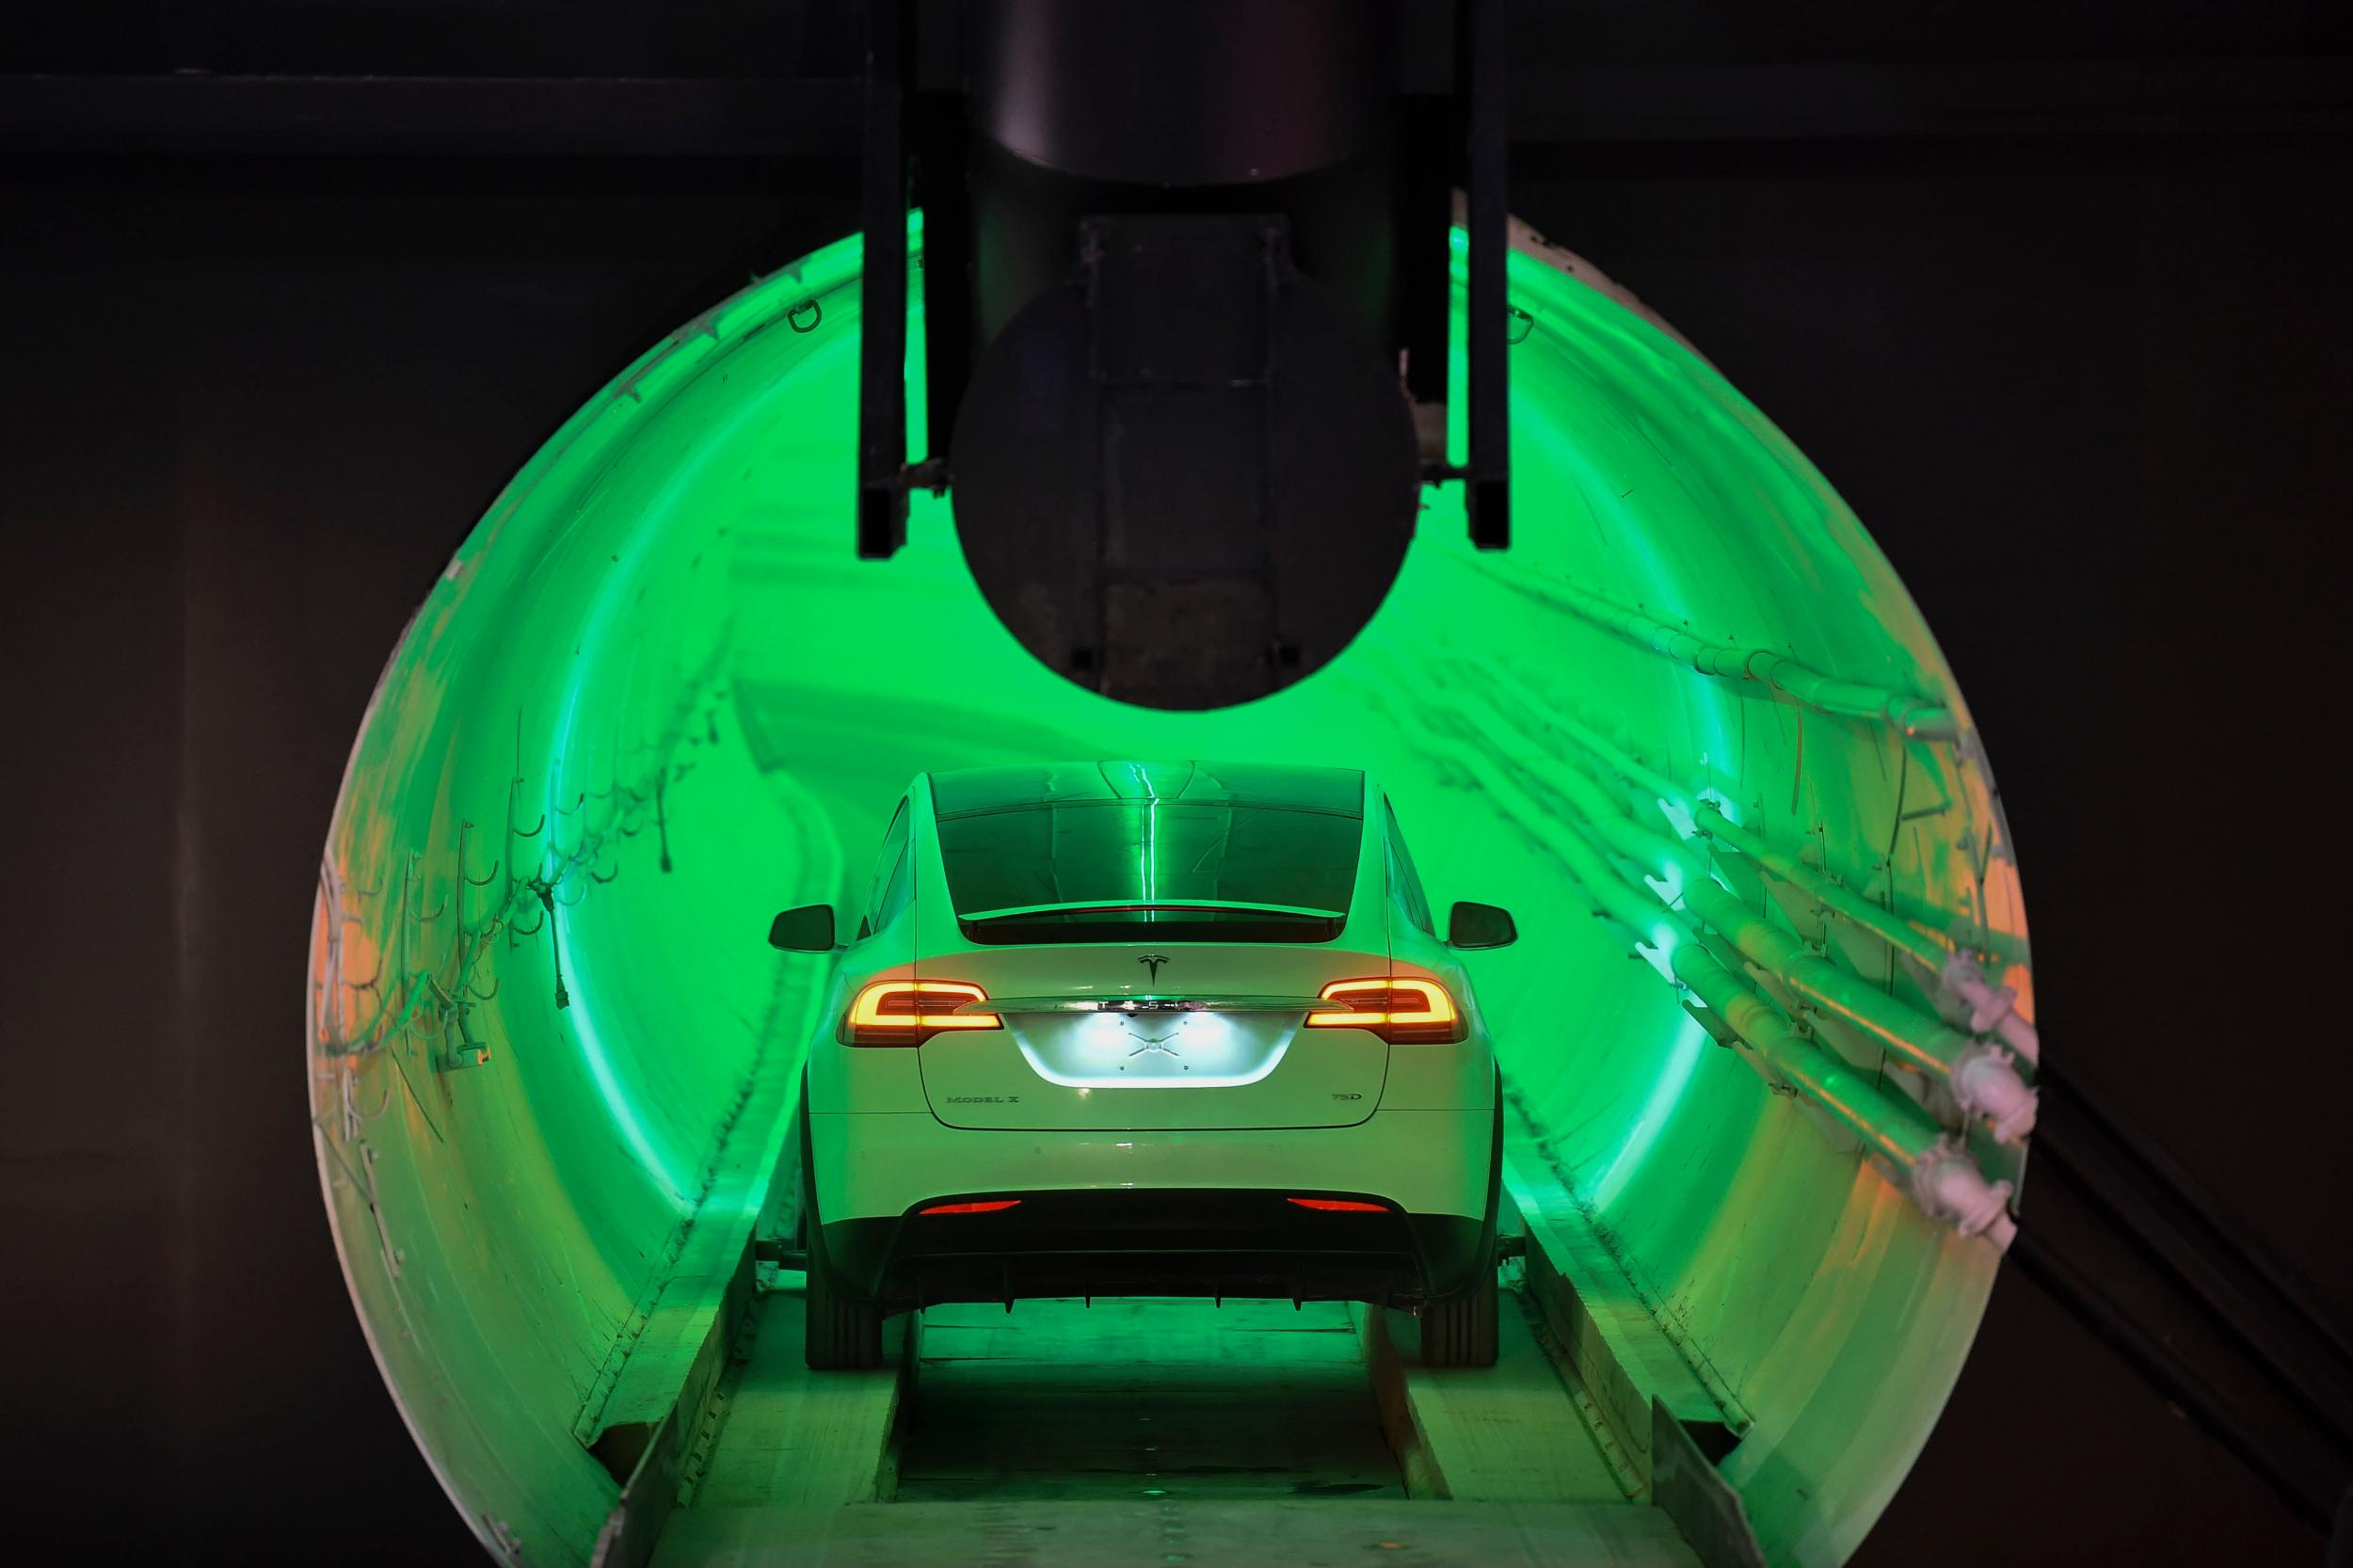 Elon Musk unveils first high-speed \'Loop\' tunnel by The Boring ...